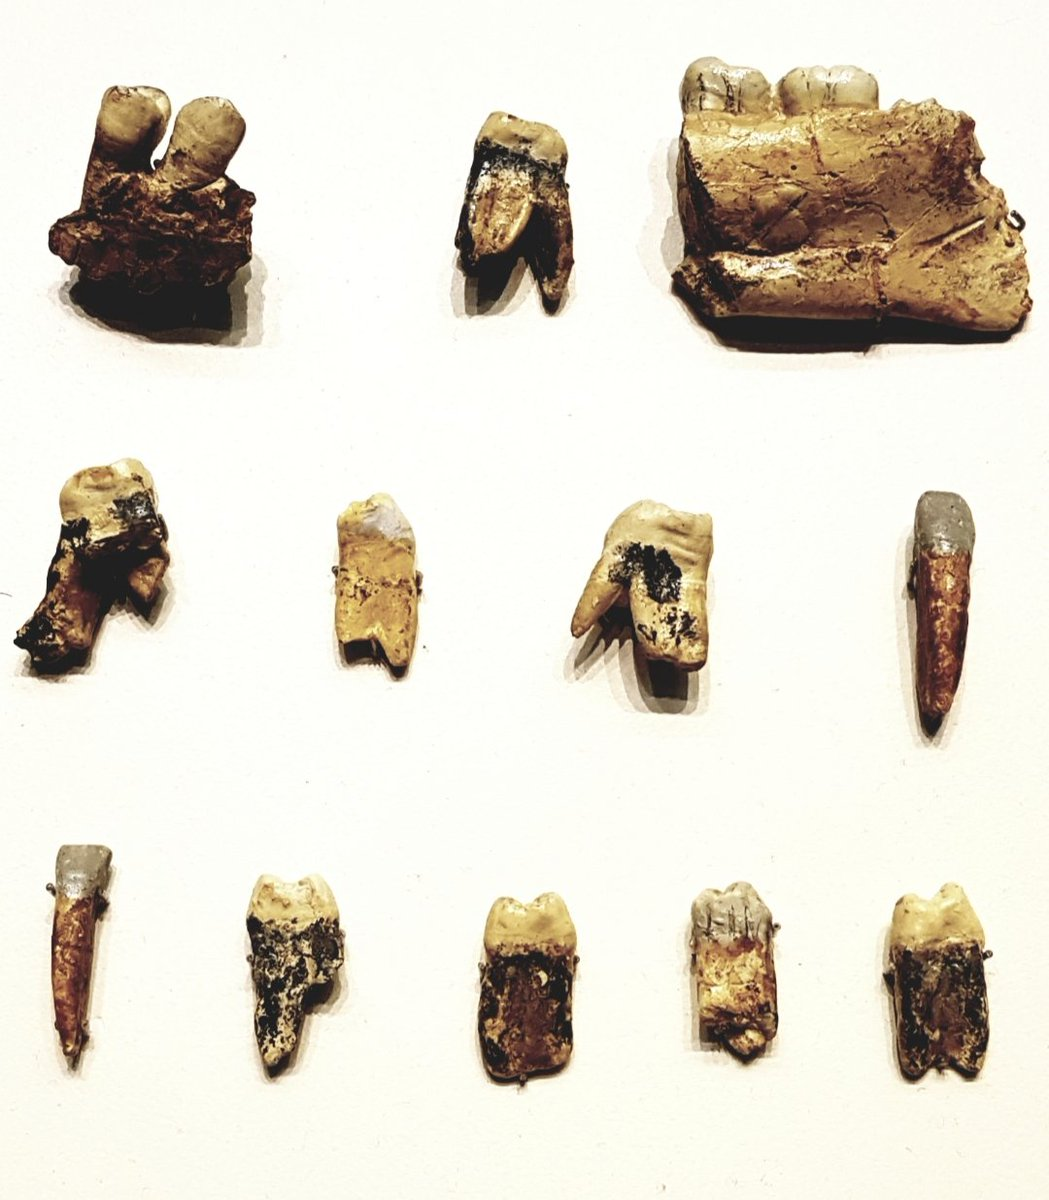 #FossilFriday Teeth and mandible fragments composing Hominid 1 of Homo antecessor, found in Gran Dolina, #Atapuerca. Dated c. 800 ka.